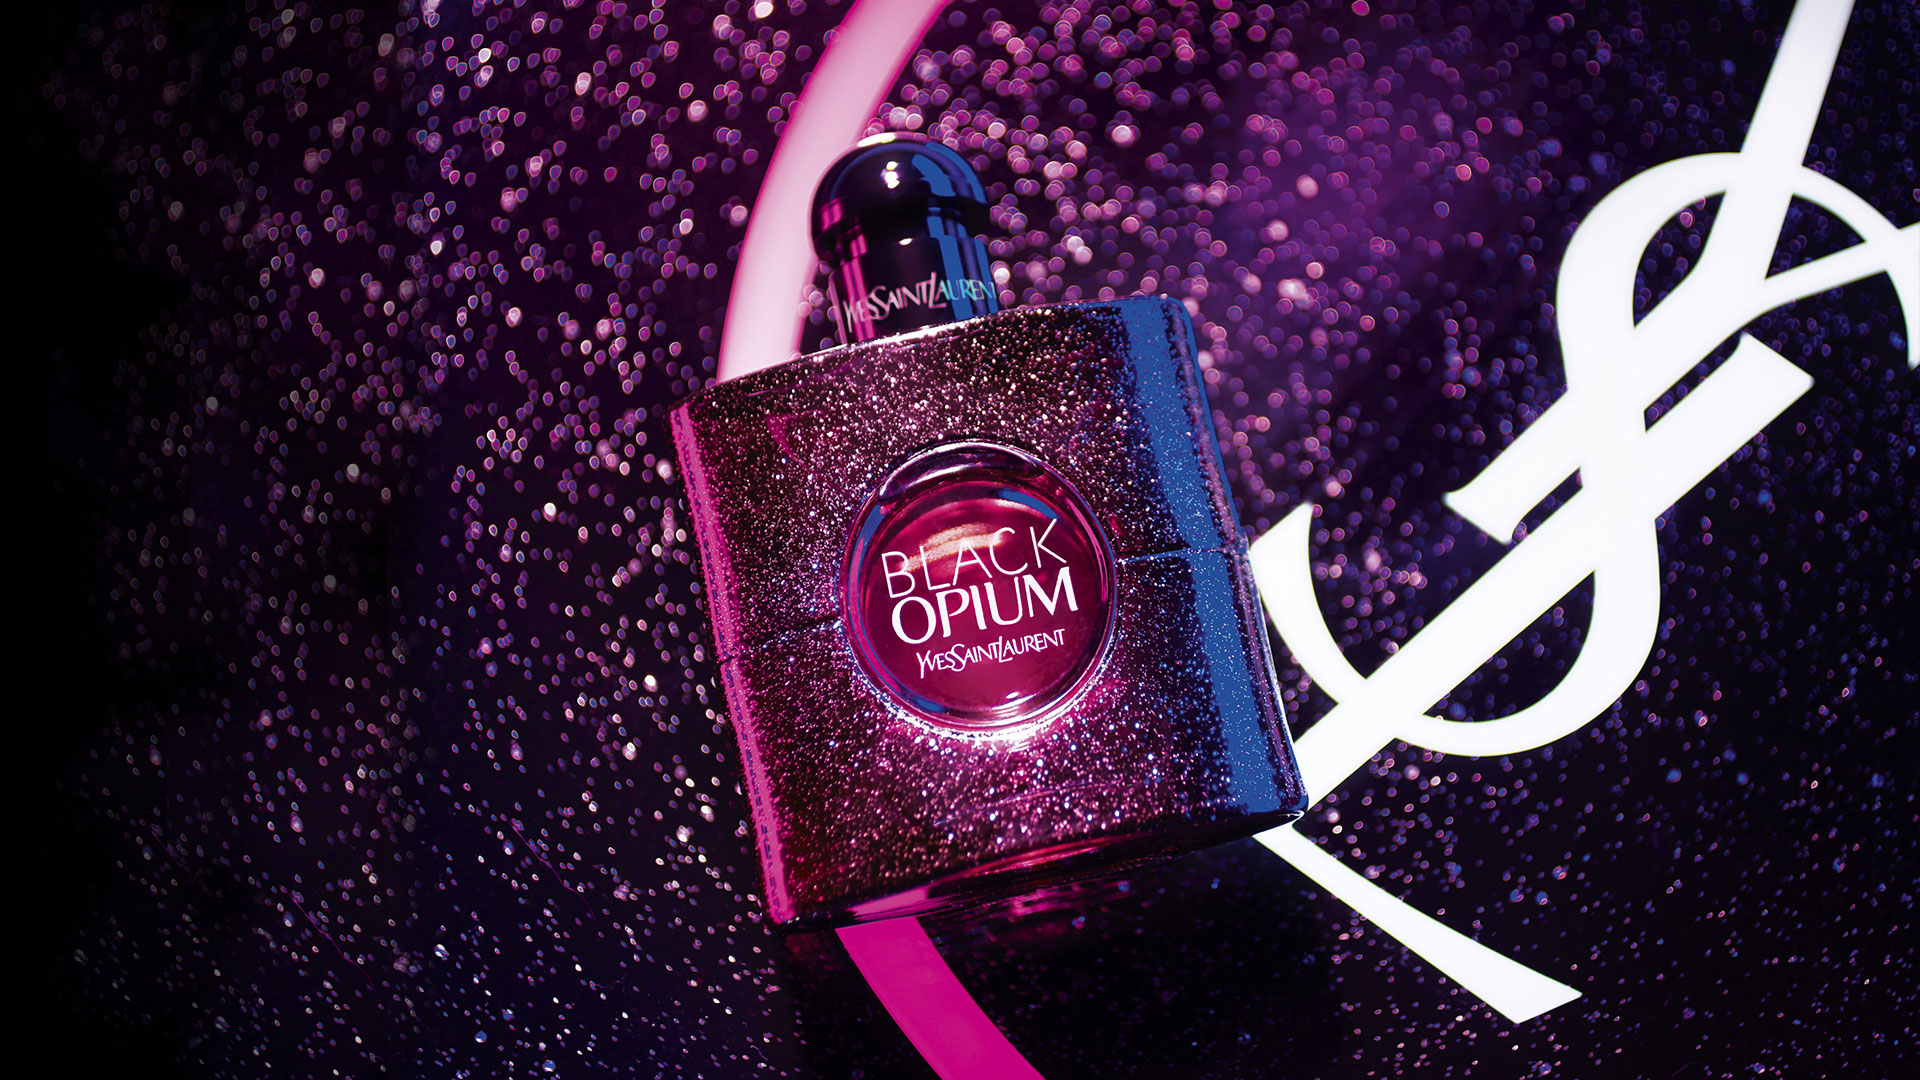 Opium Glowing Eau de Toilette